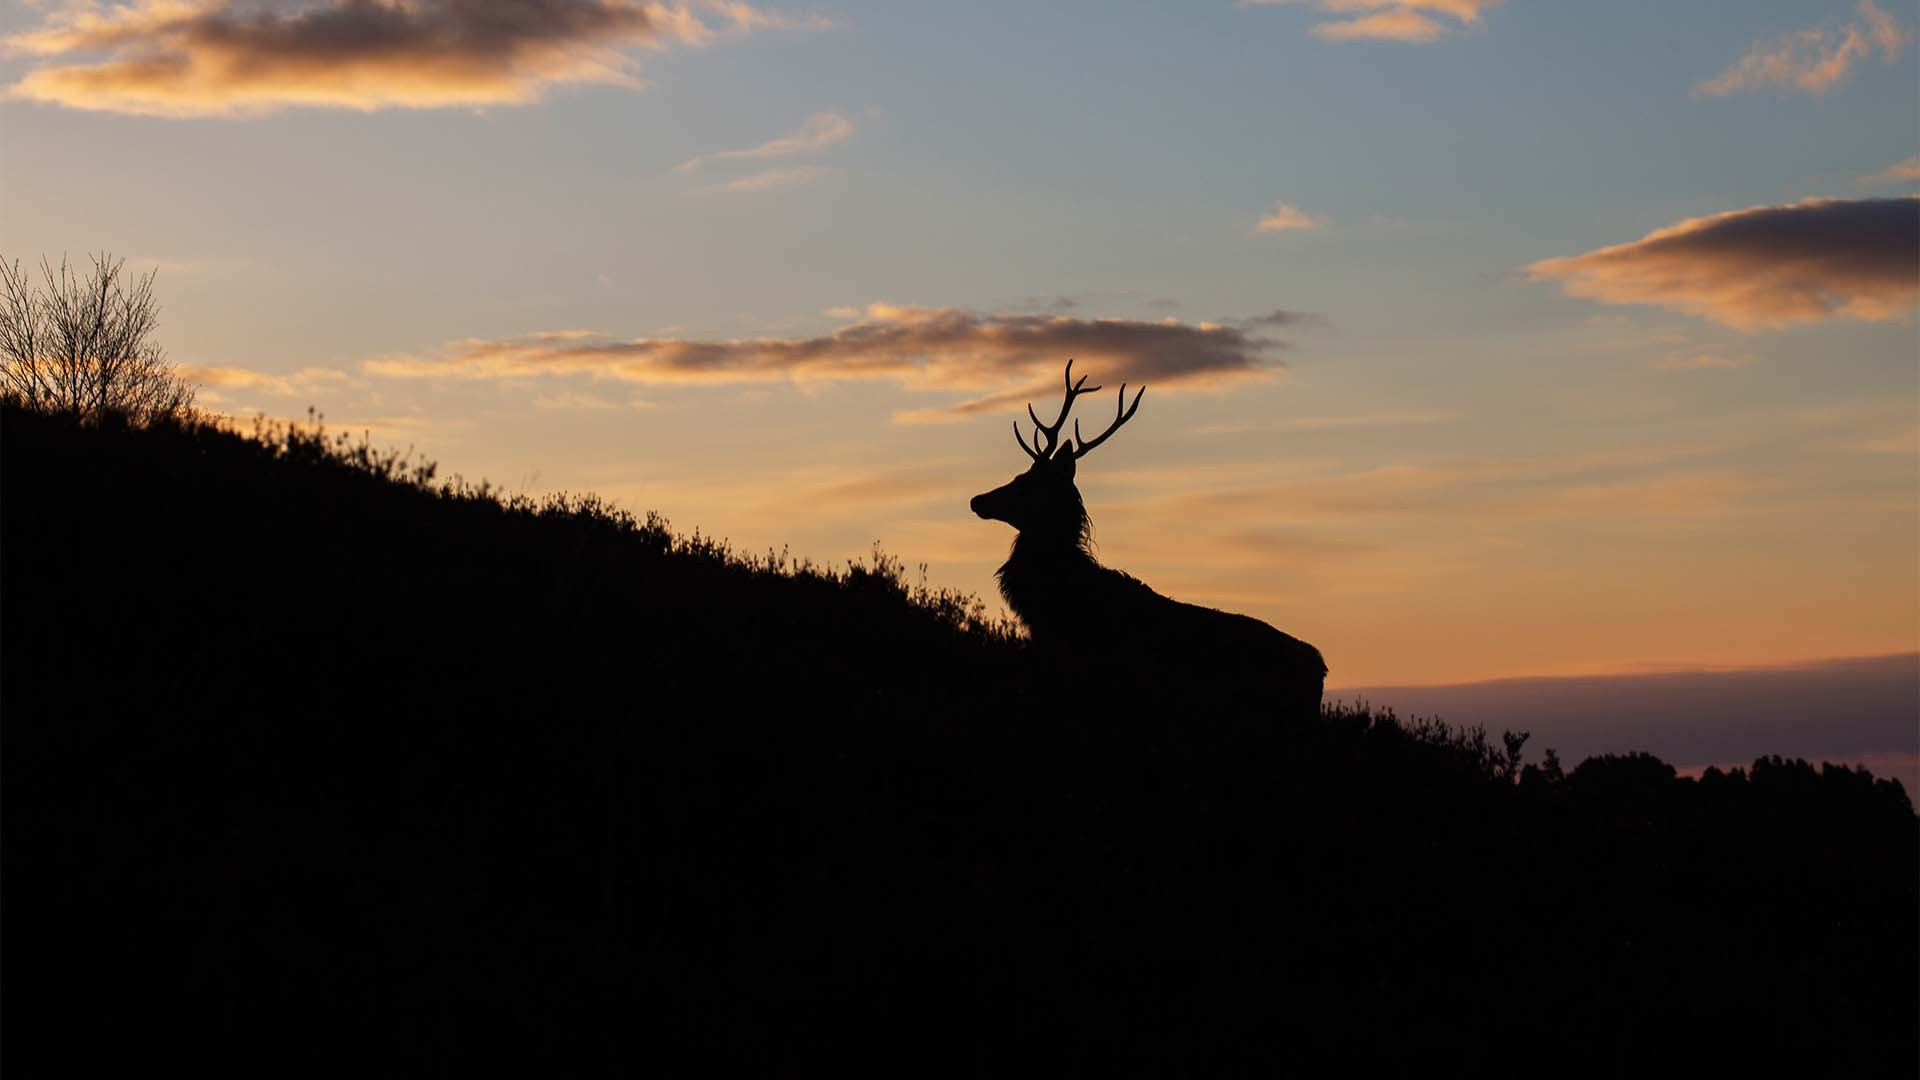 Stag at sunset in Alladale, Scotland